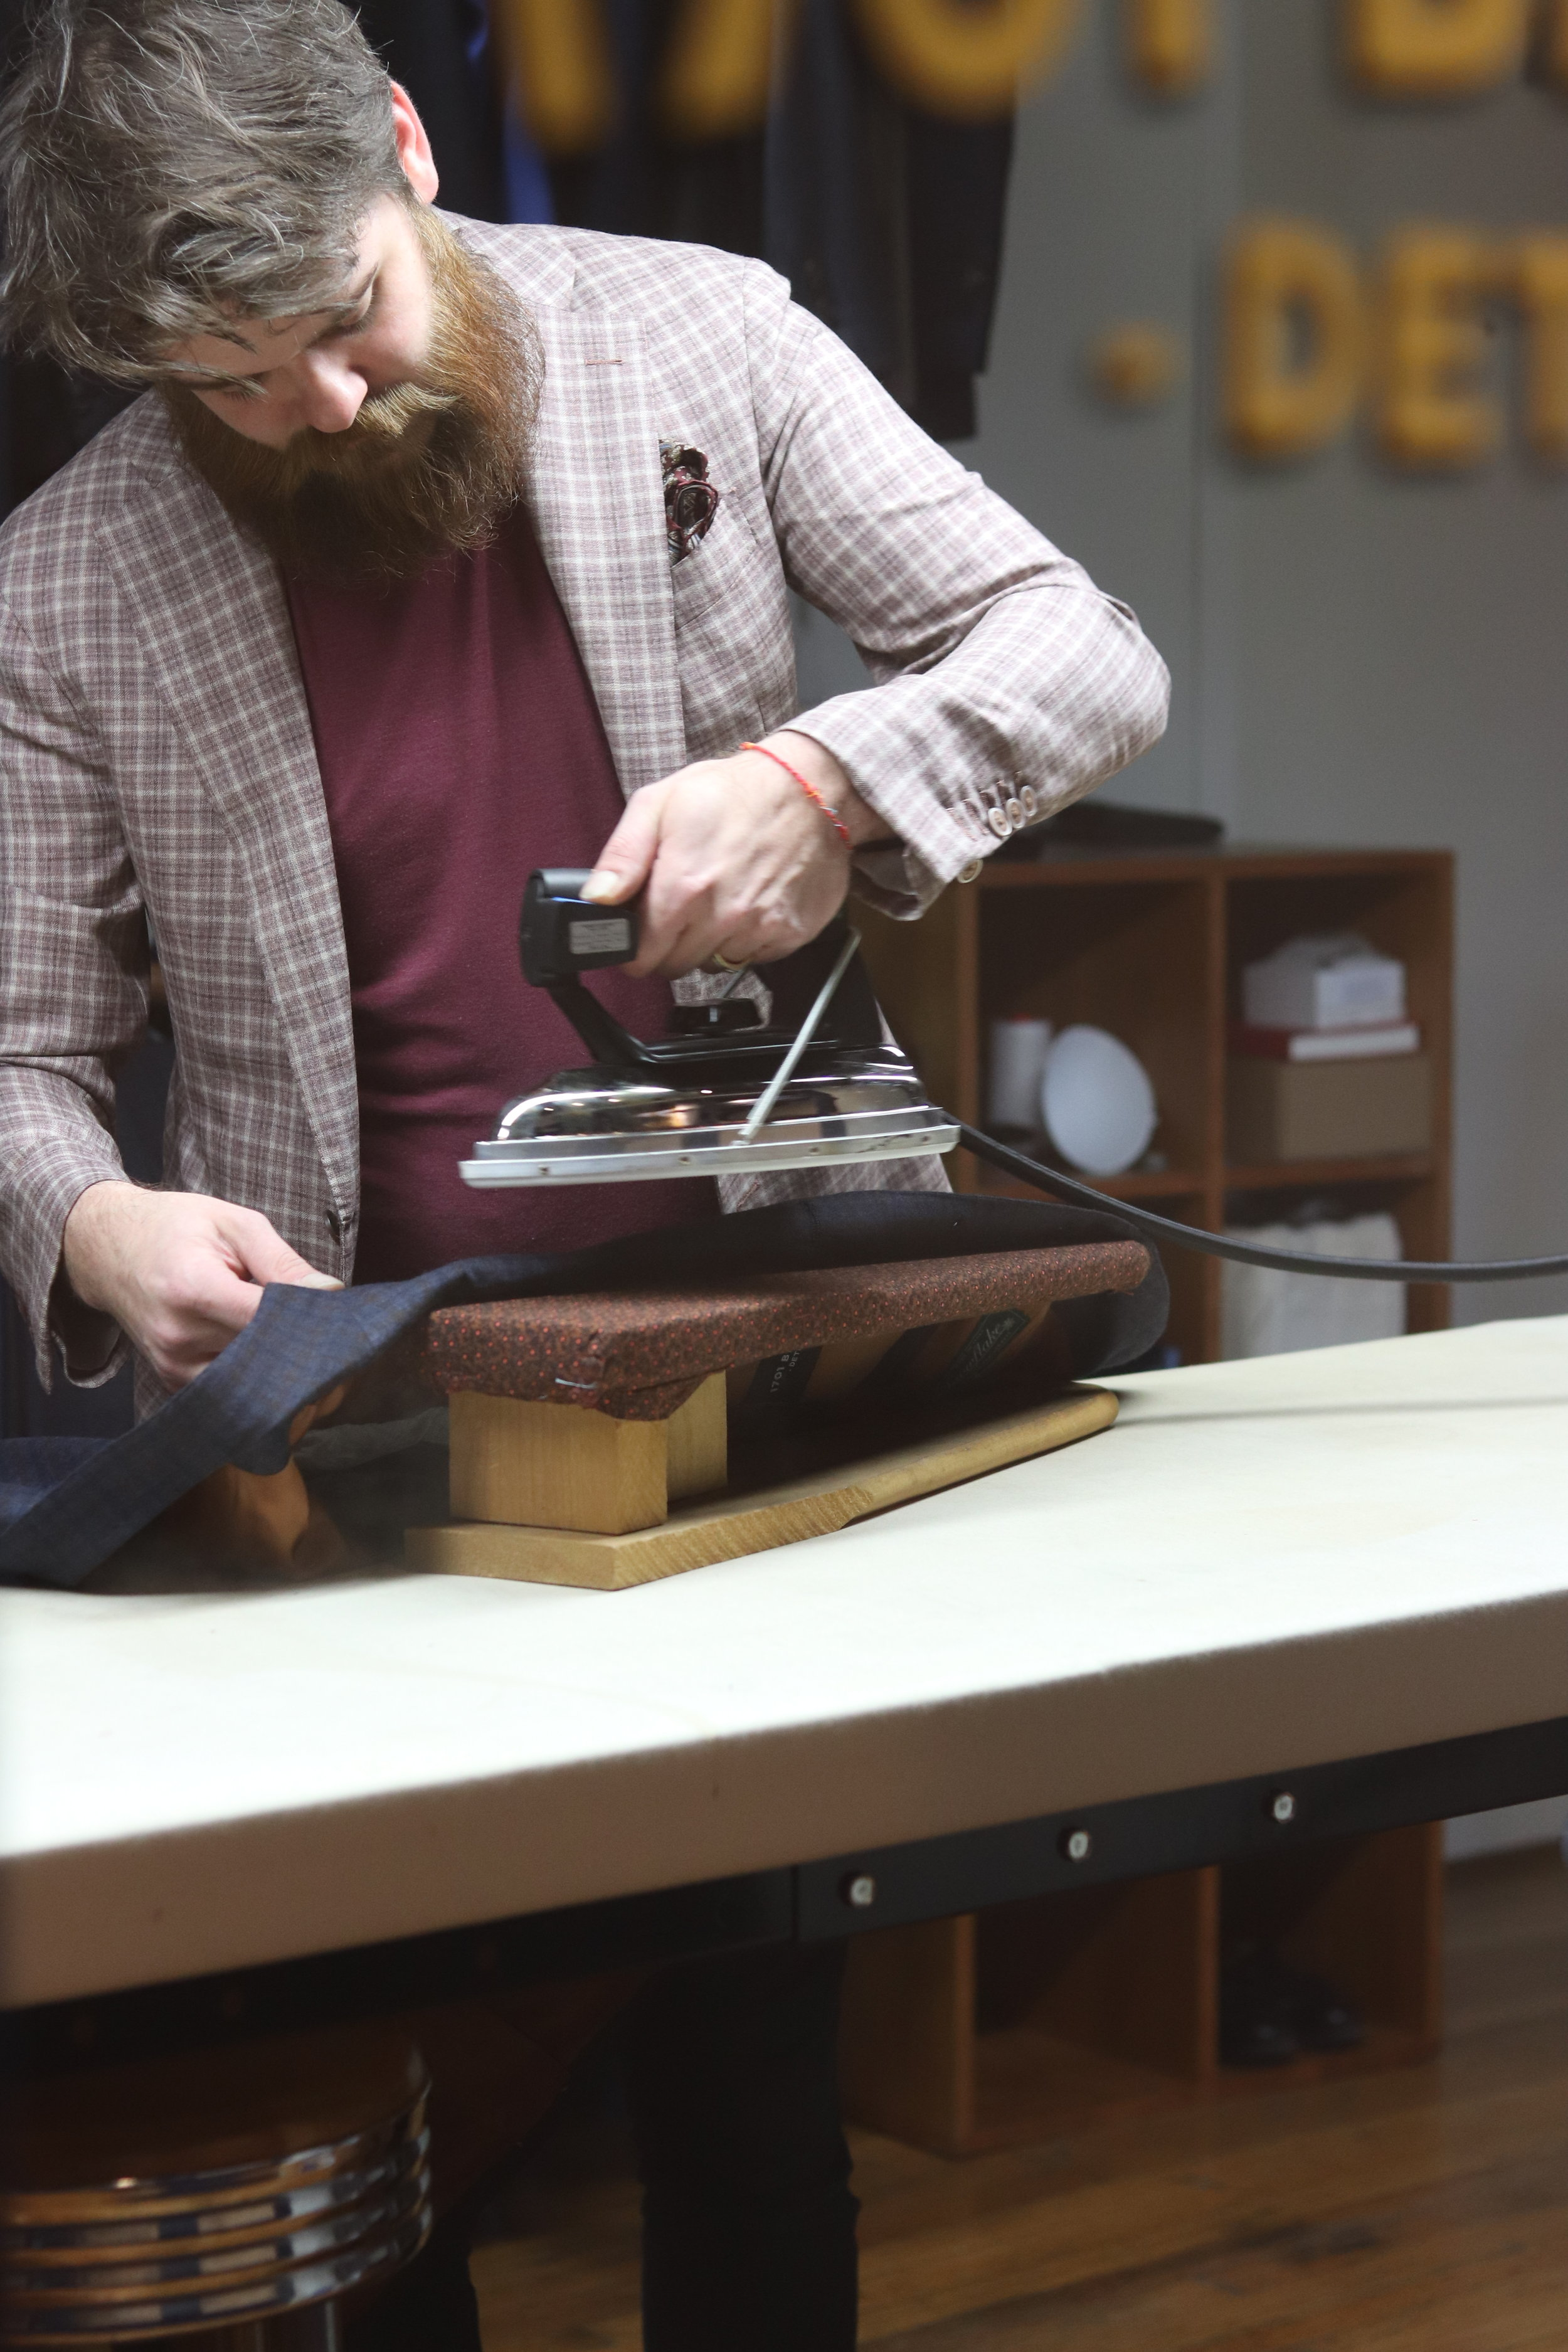 Keith Magna applying a gentle steam to the lapel of a coat.